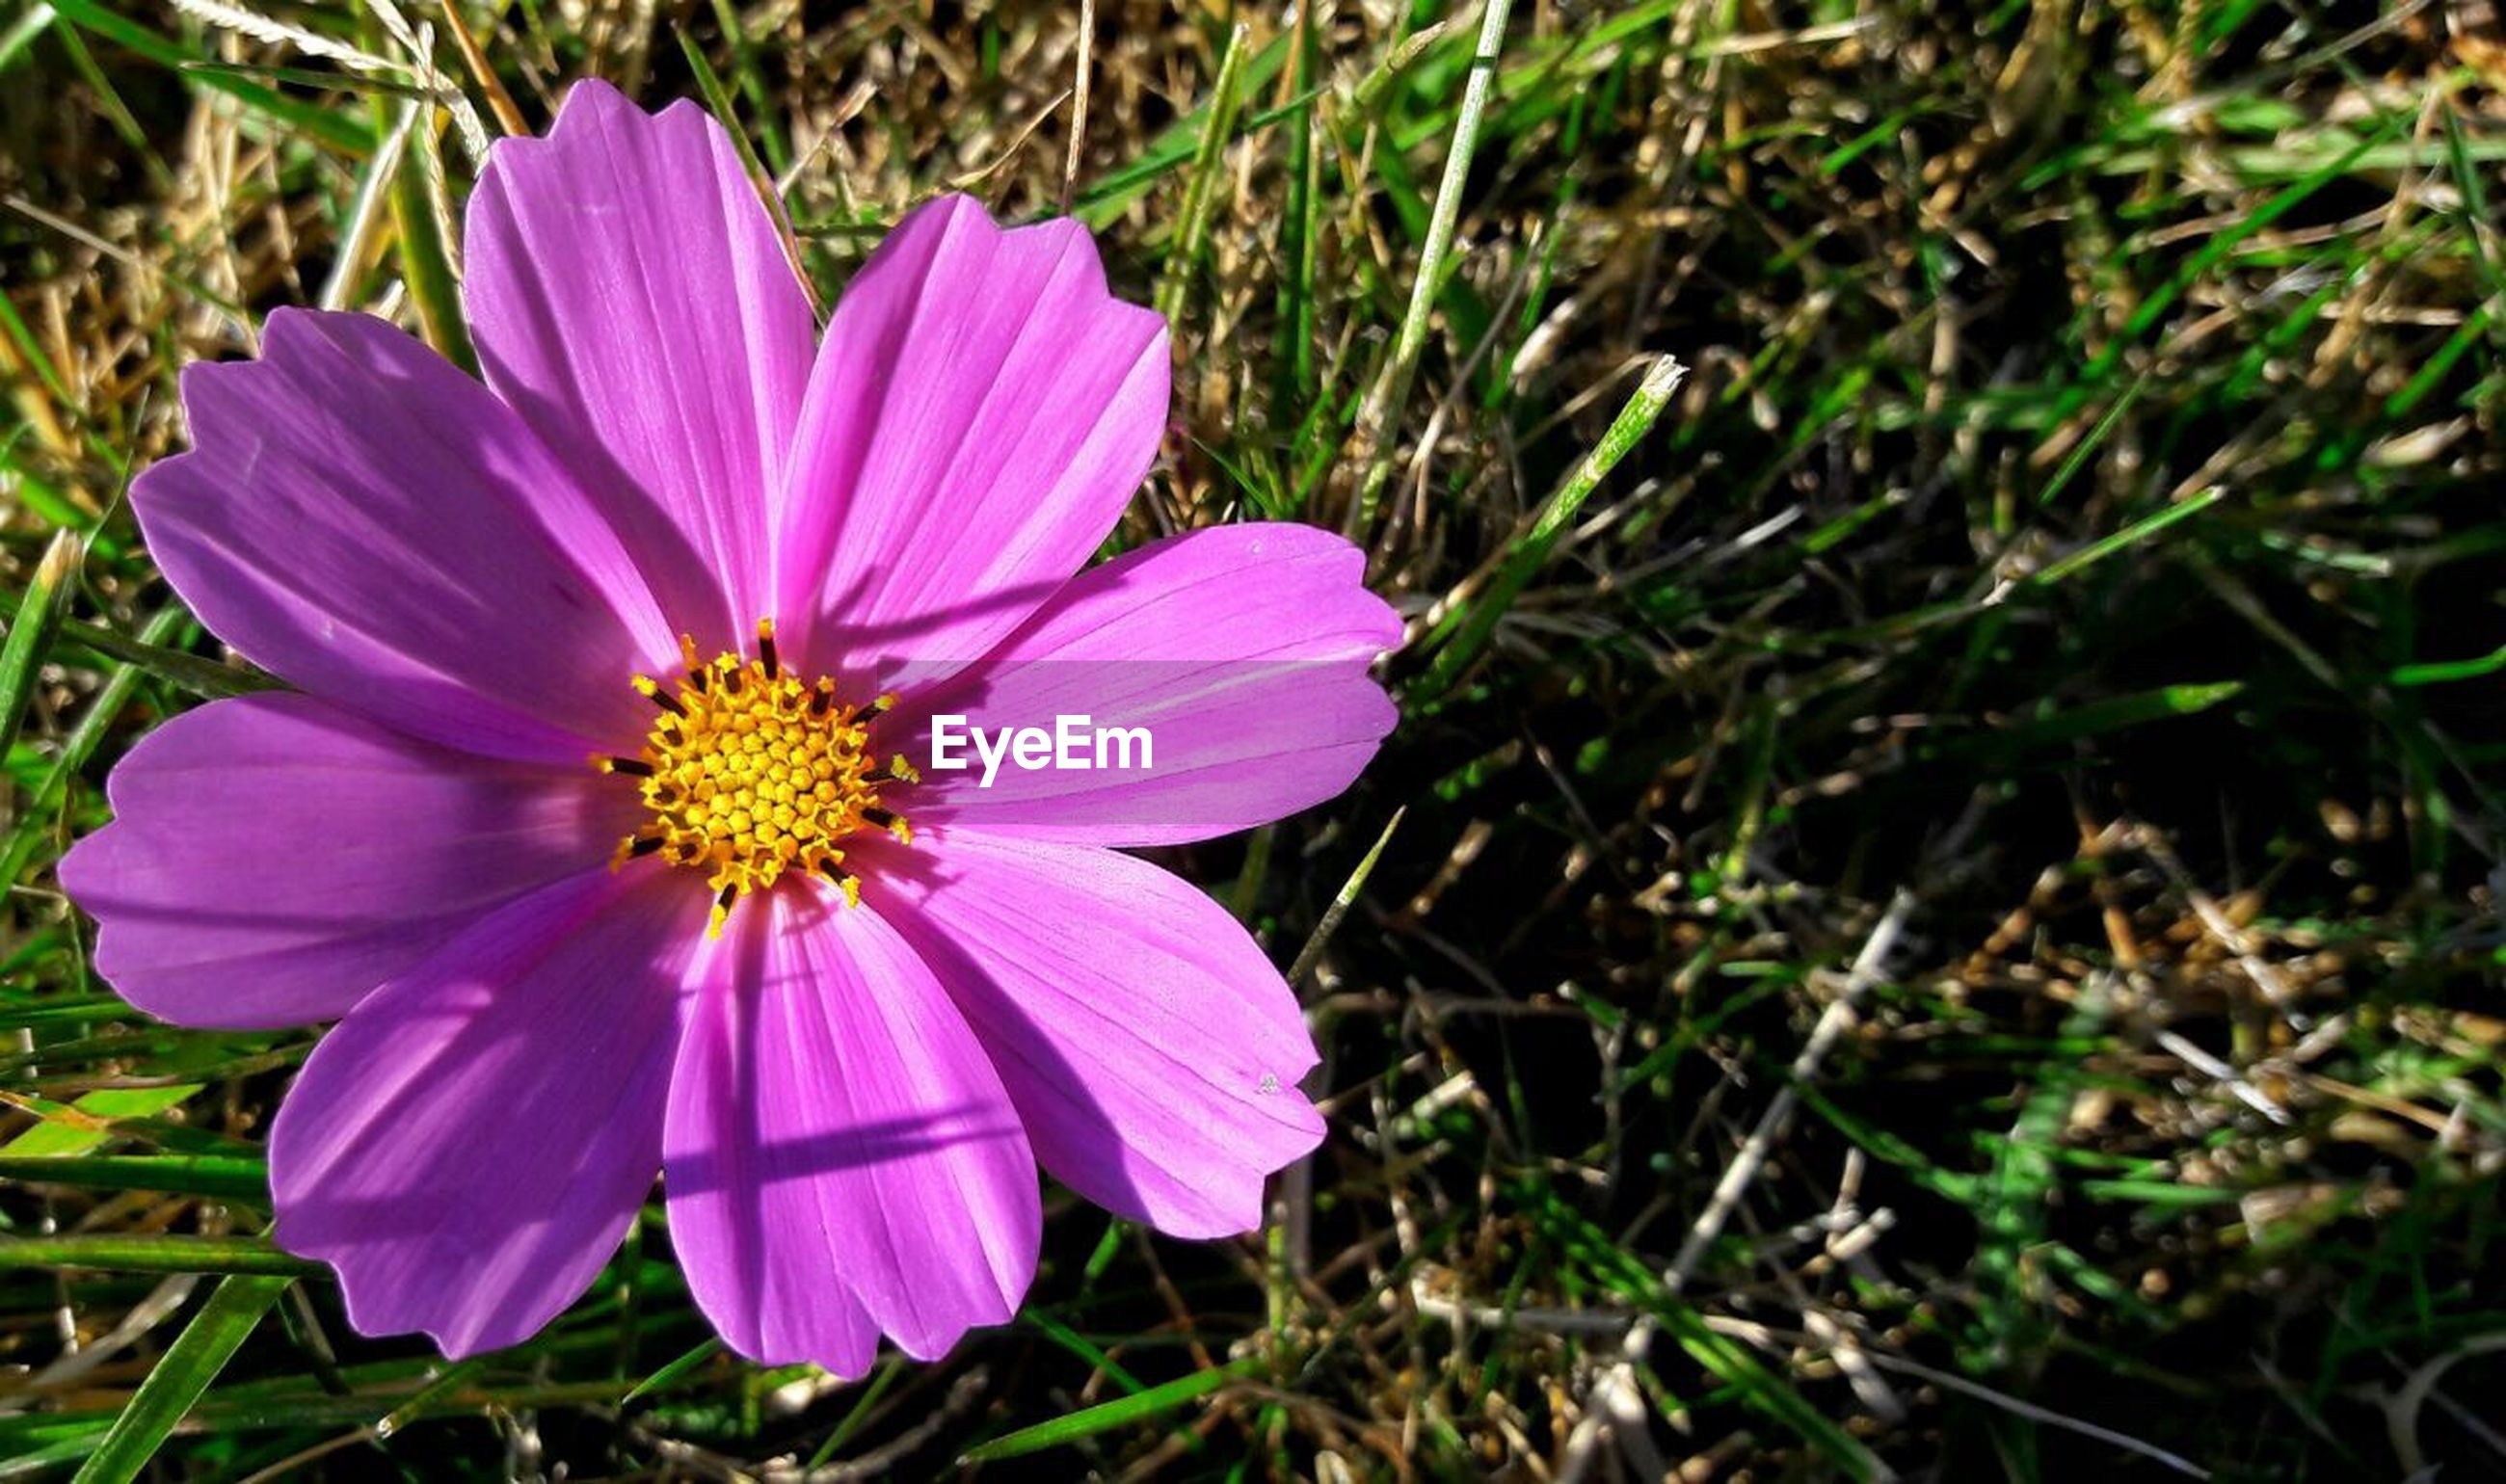 freshness, flower, petal, flower head, fragility, growth, close-up, purple, beauty in nature, single flower, nature, in bloom, springtime, season, blossom, selective focus, plant, stamen, pollen, daisy, blooming, botany, pink color, focus on foreground, green color, pink, field, day, vibrant color, outdoors, bloom, tranquility